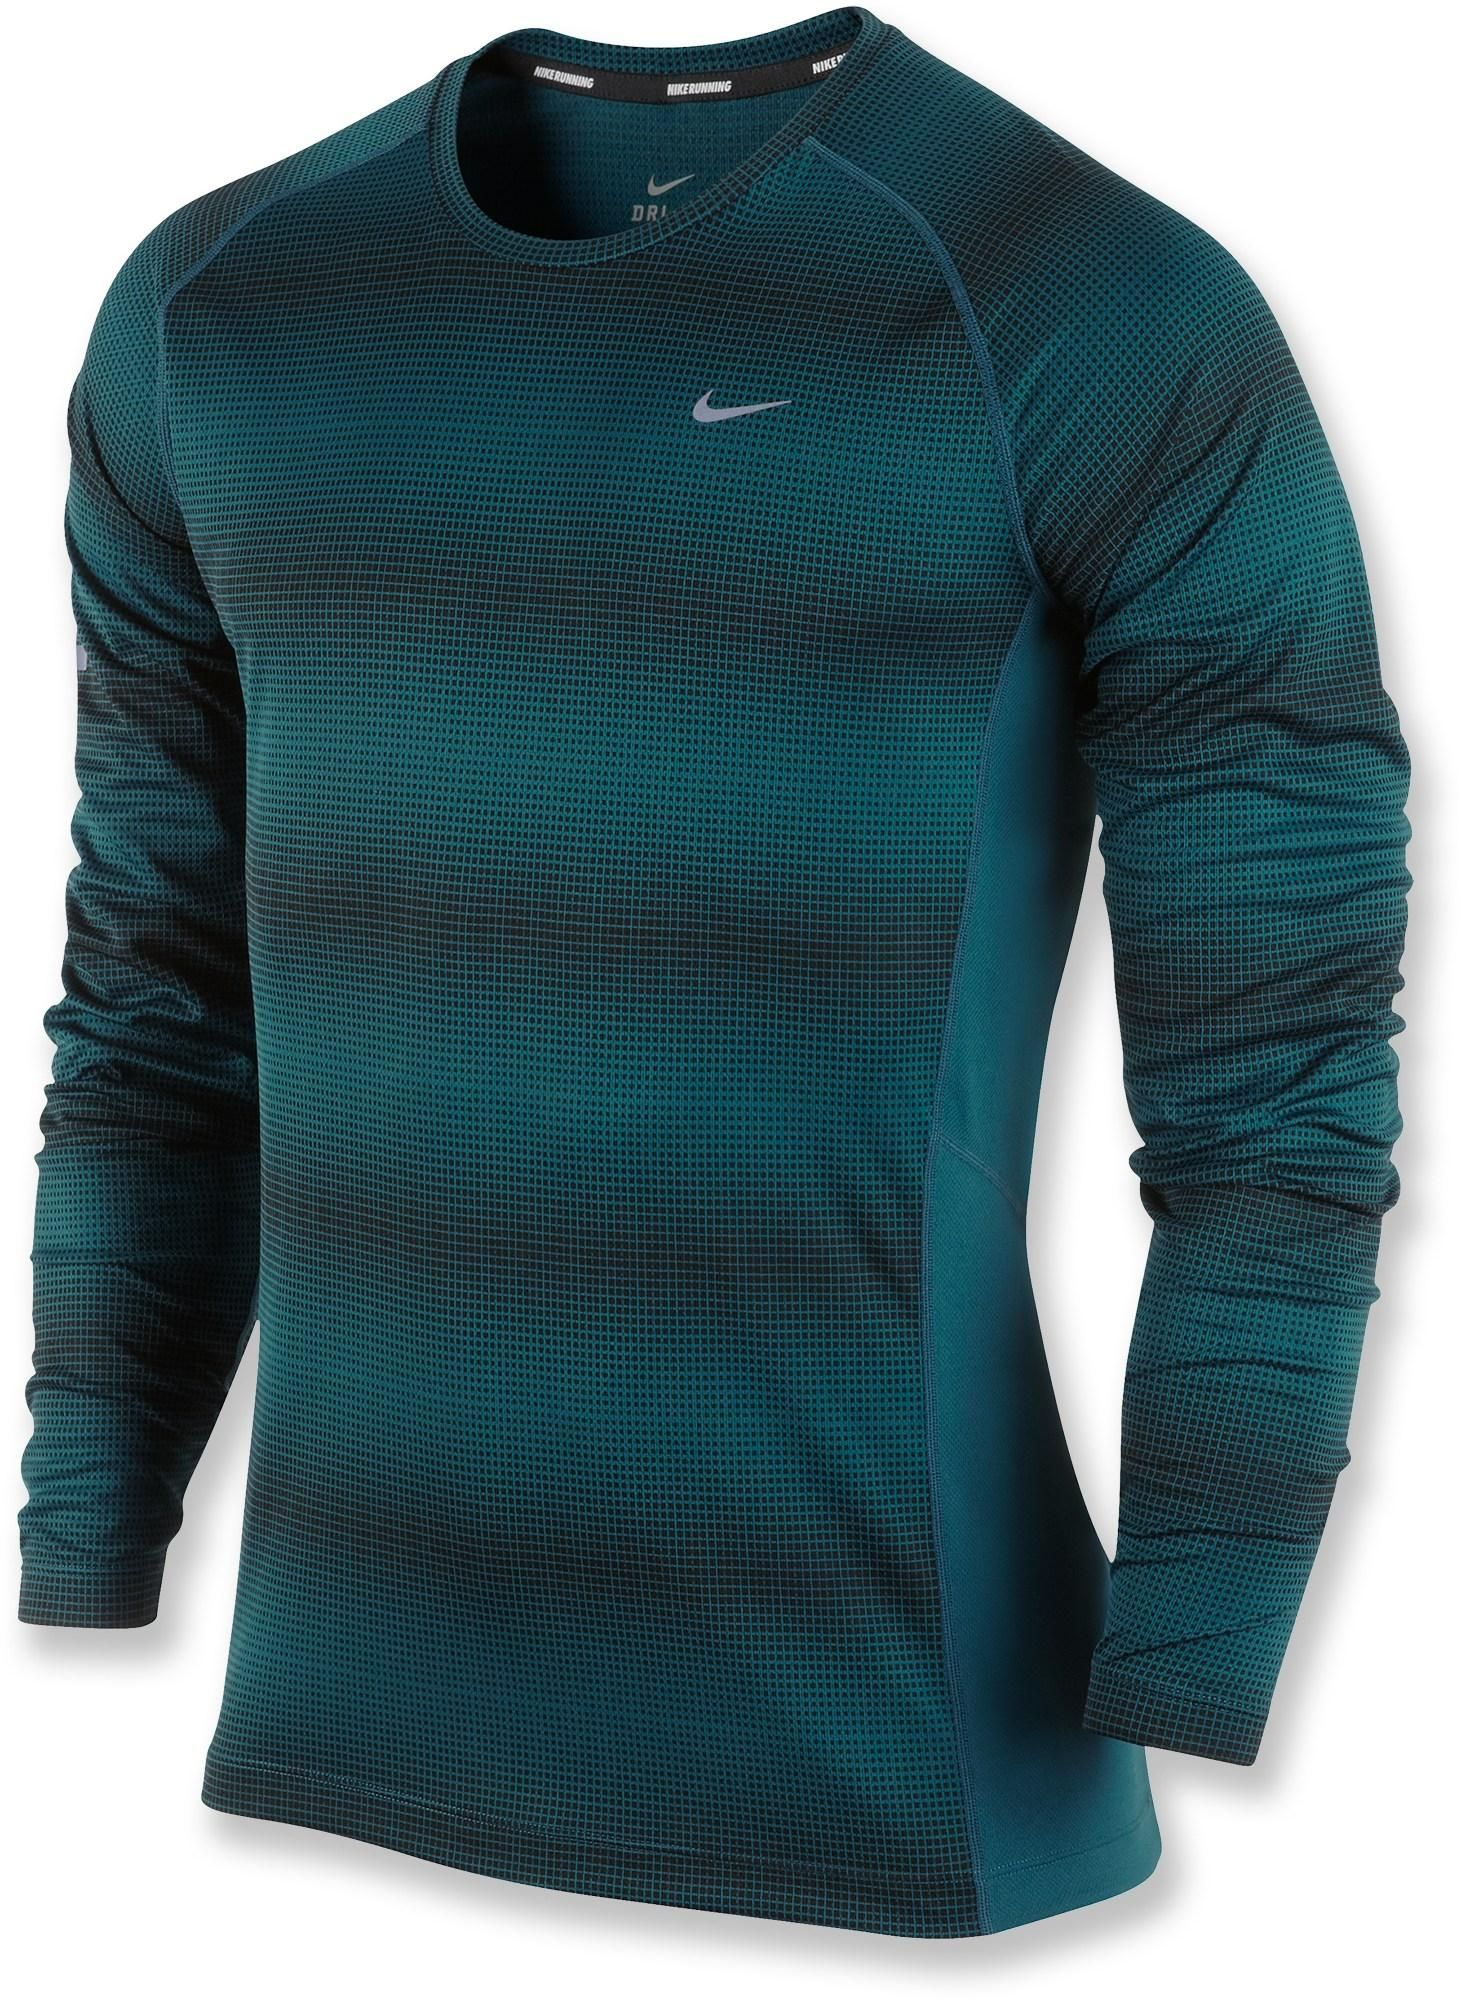 Cooling Mesh Side Panels And Moisture Wicking Fabric Make The